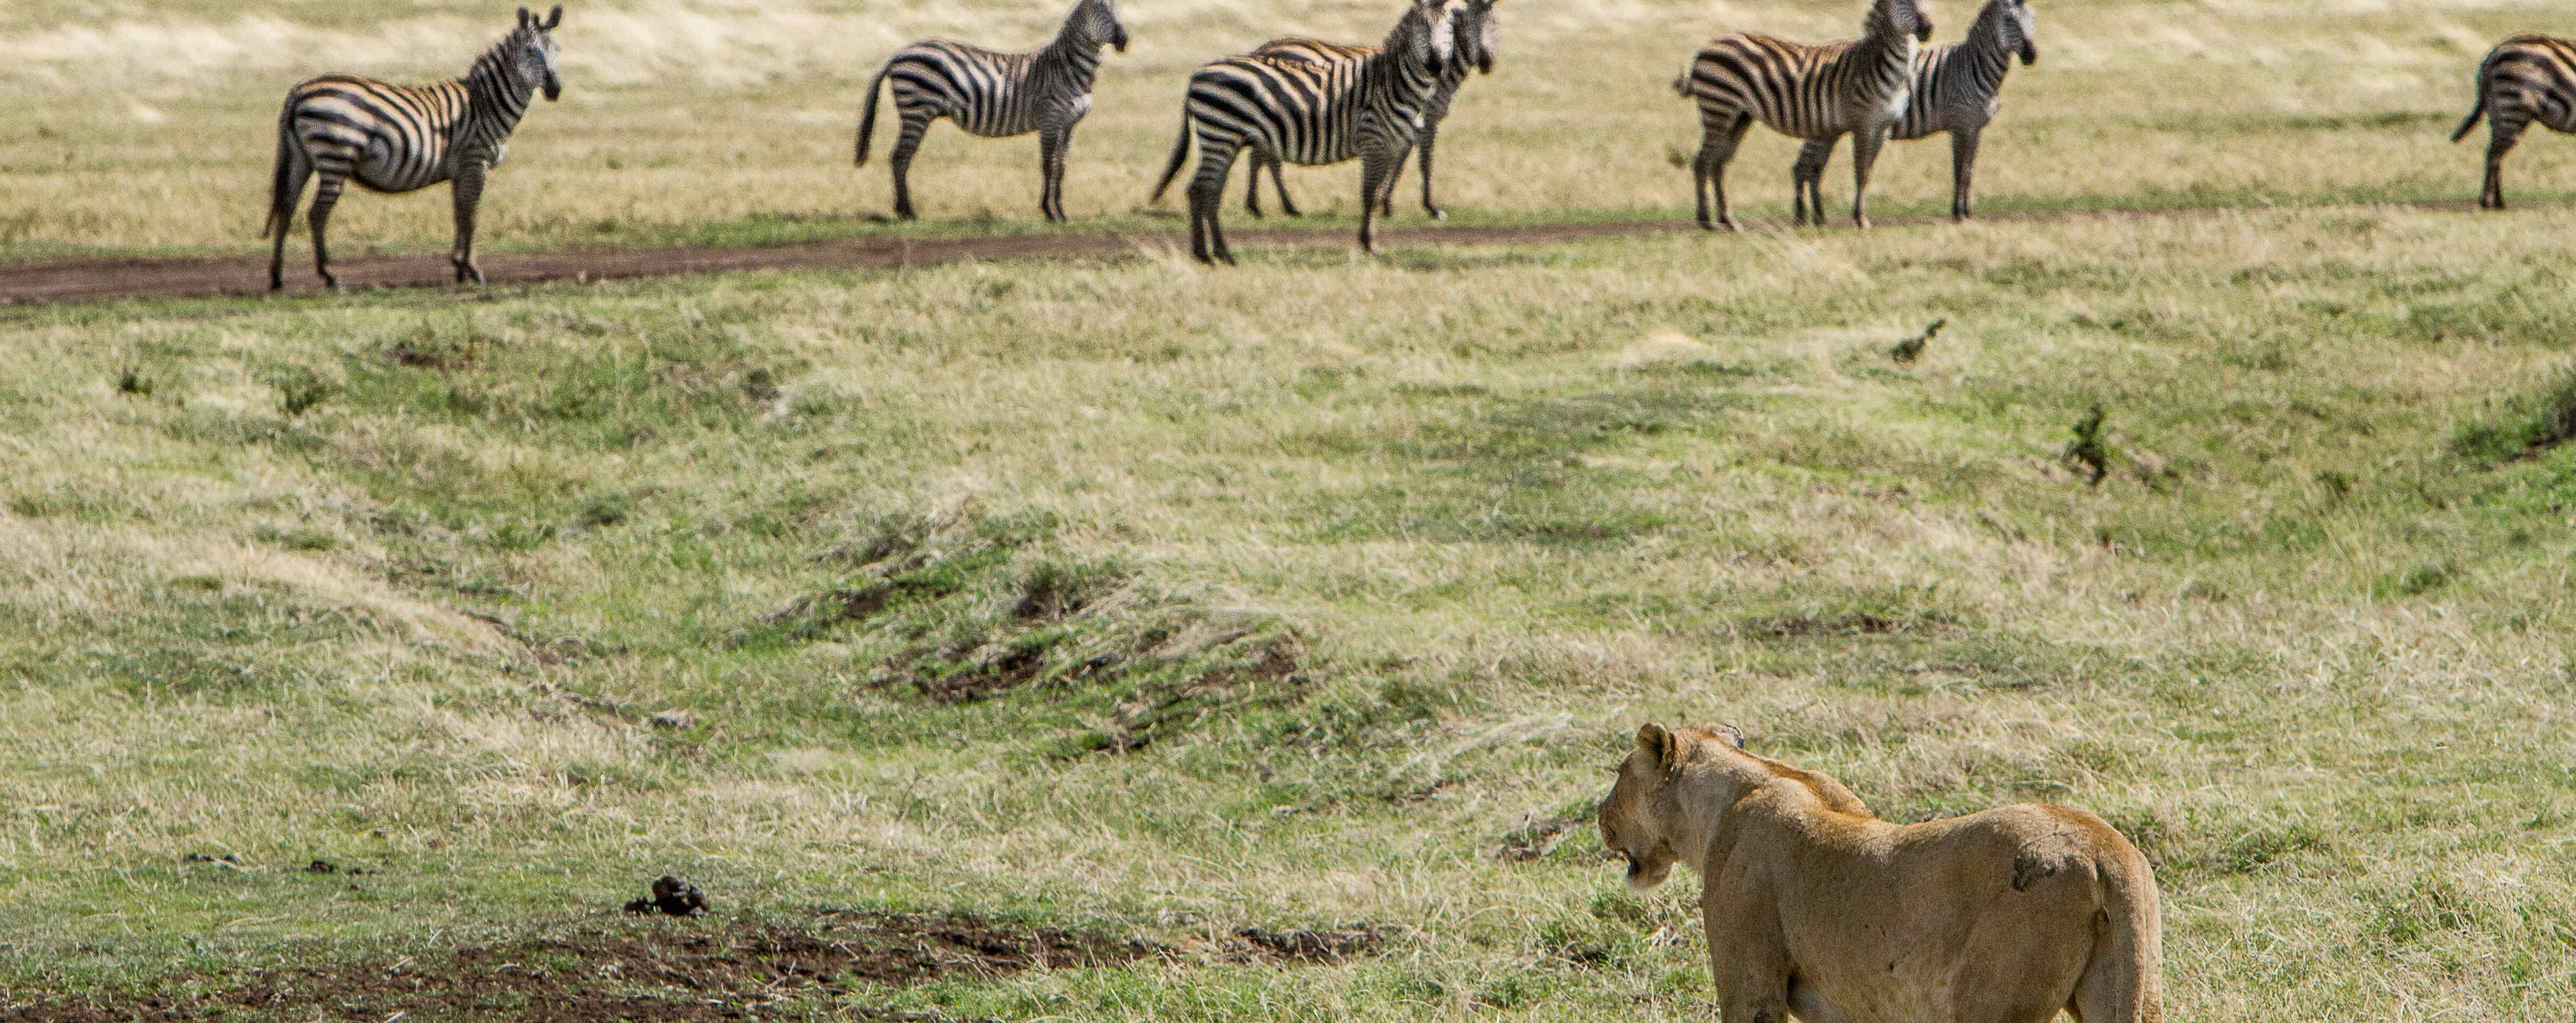 lion looking at a herd of zebras